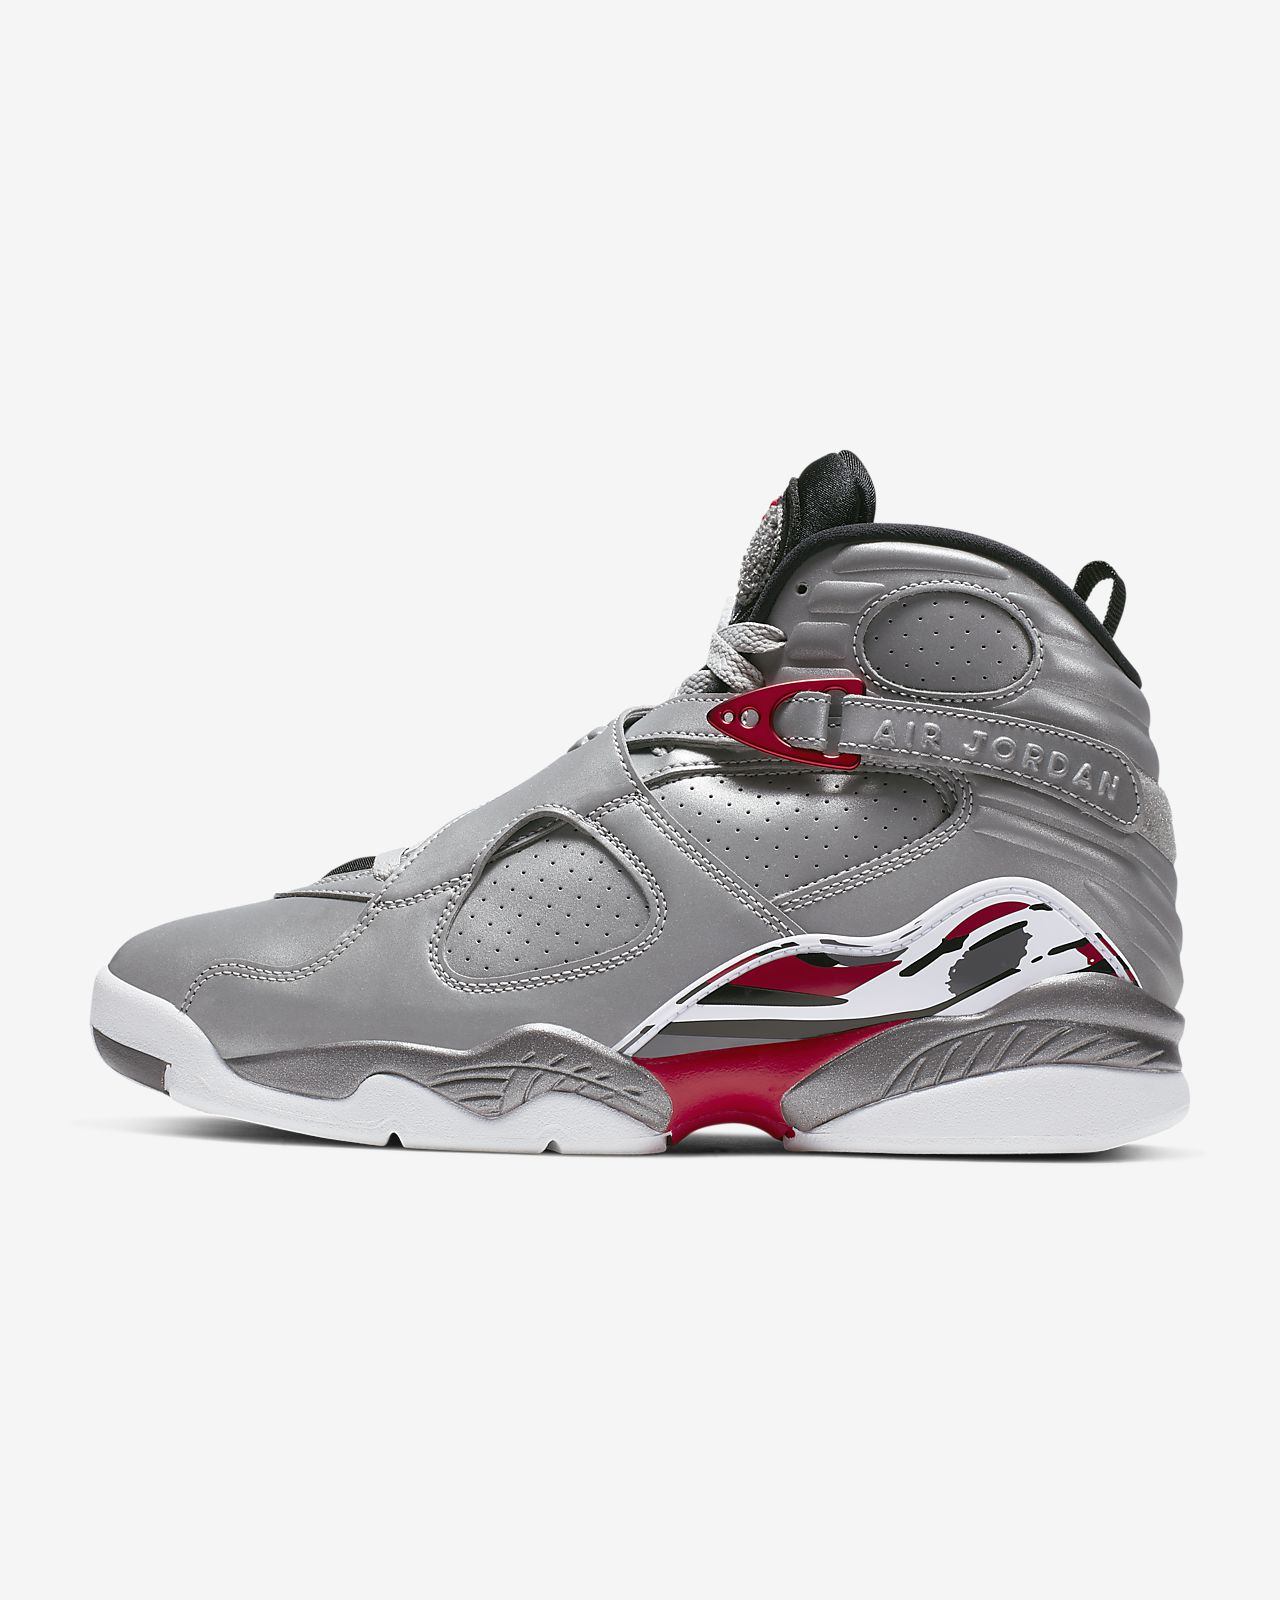 chaussures de sport 447ab 7ddac Air Jordan 8 Retro Men's Shoe